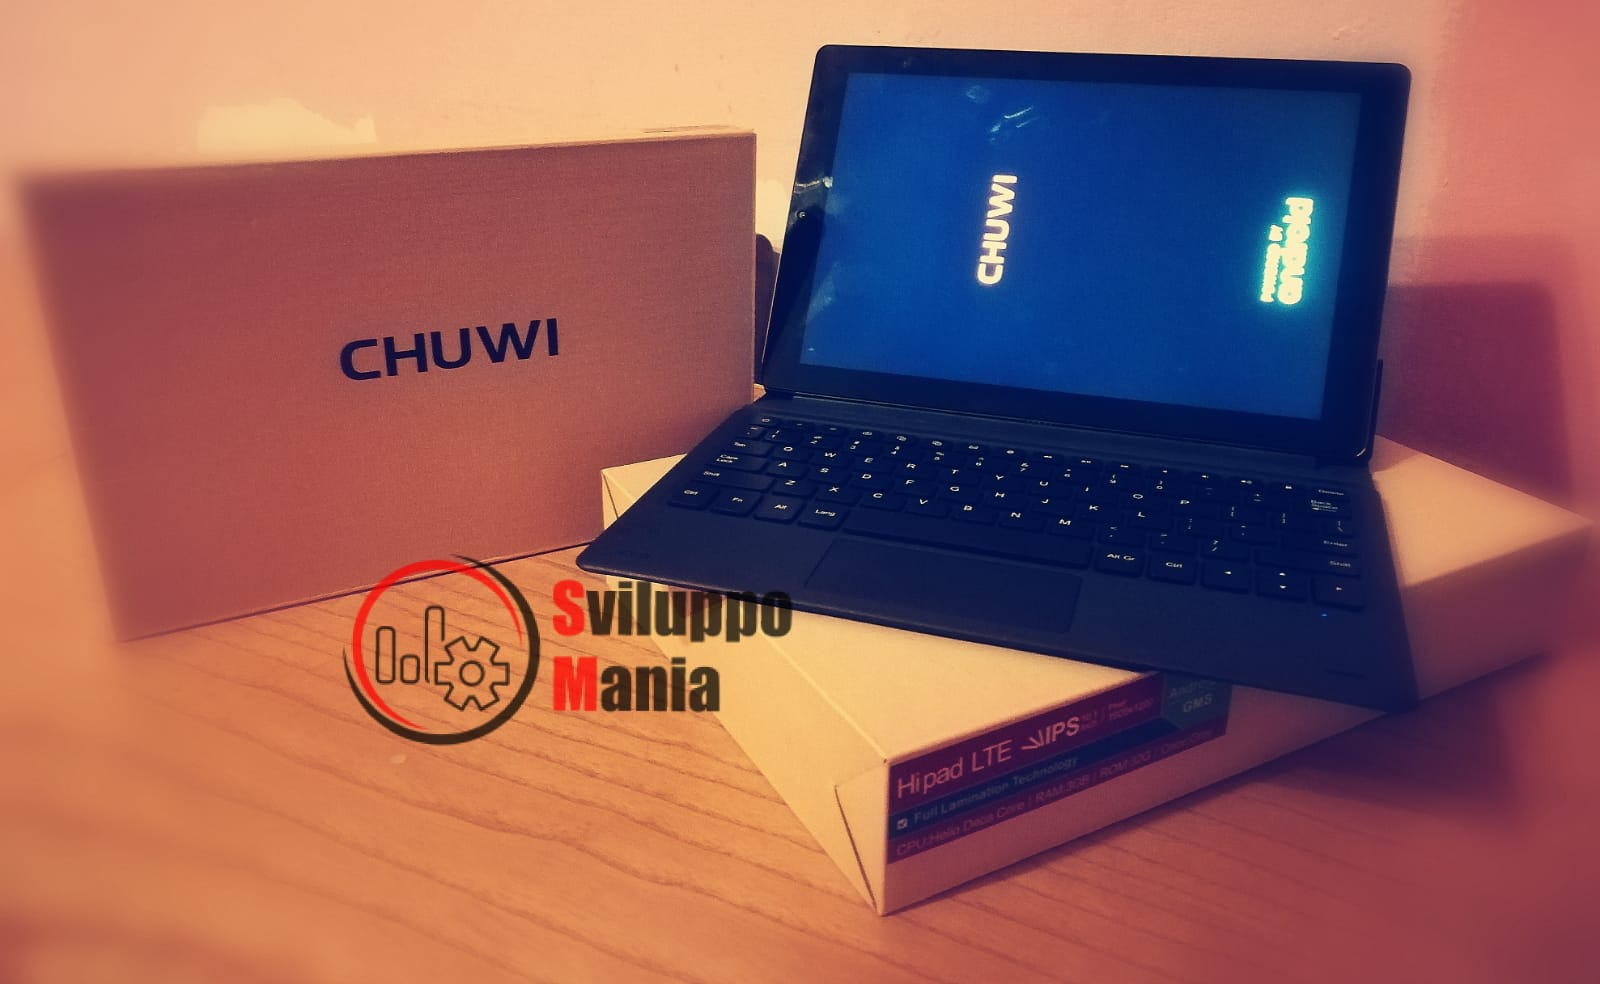 Review of the Chuwi HiPad LTE or 4G Tablet